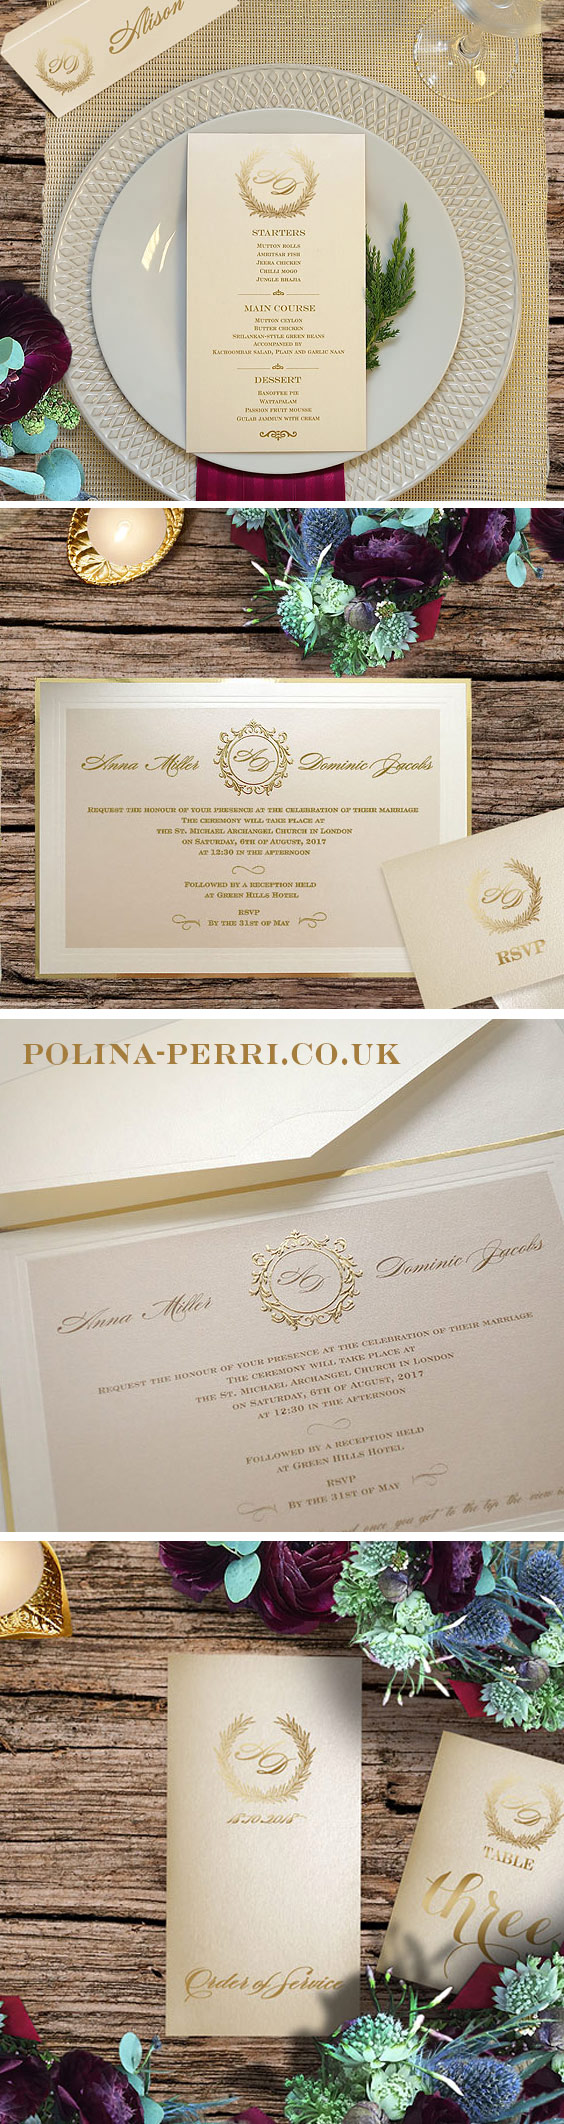 Ivory & Gold wedding invitations fascinate with its regal charm ...